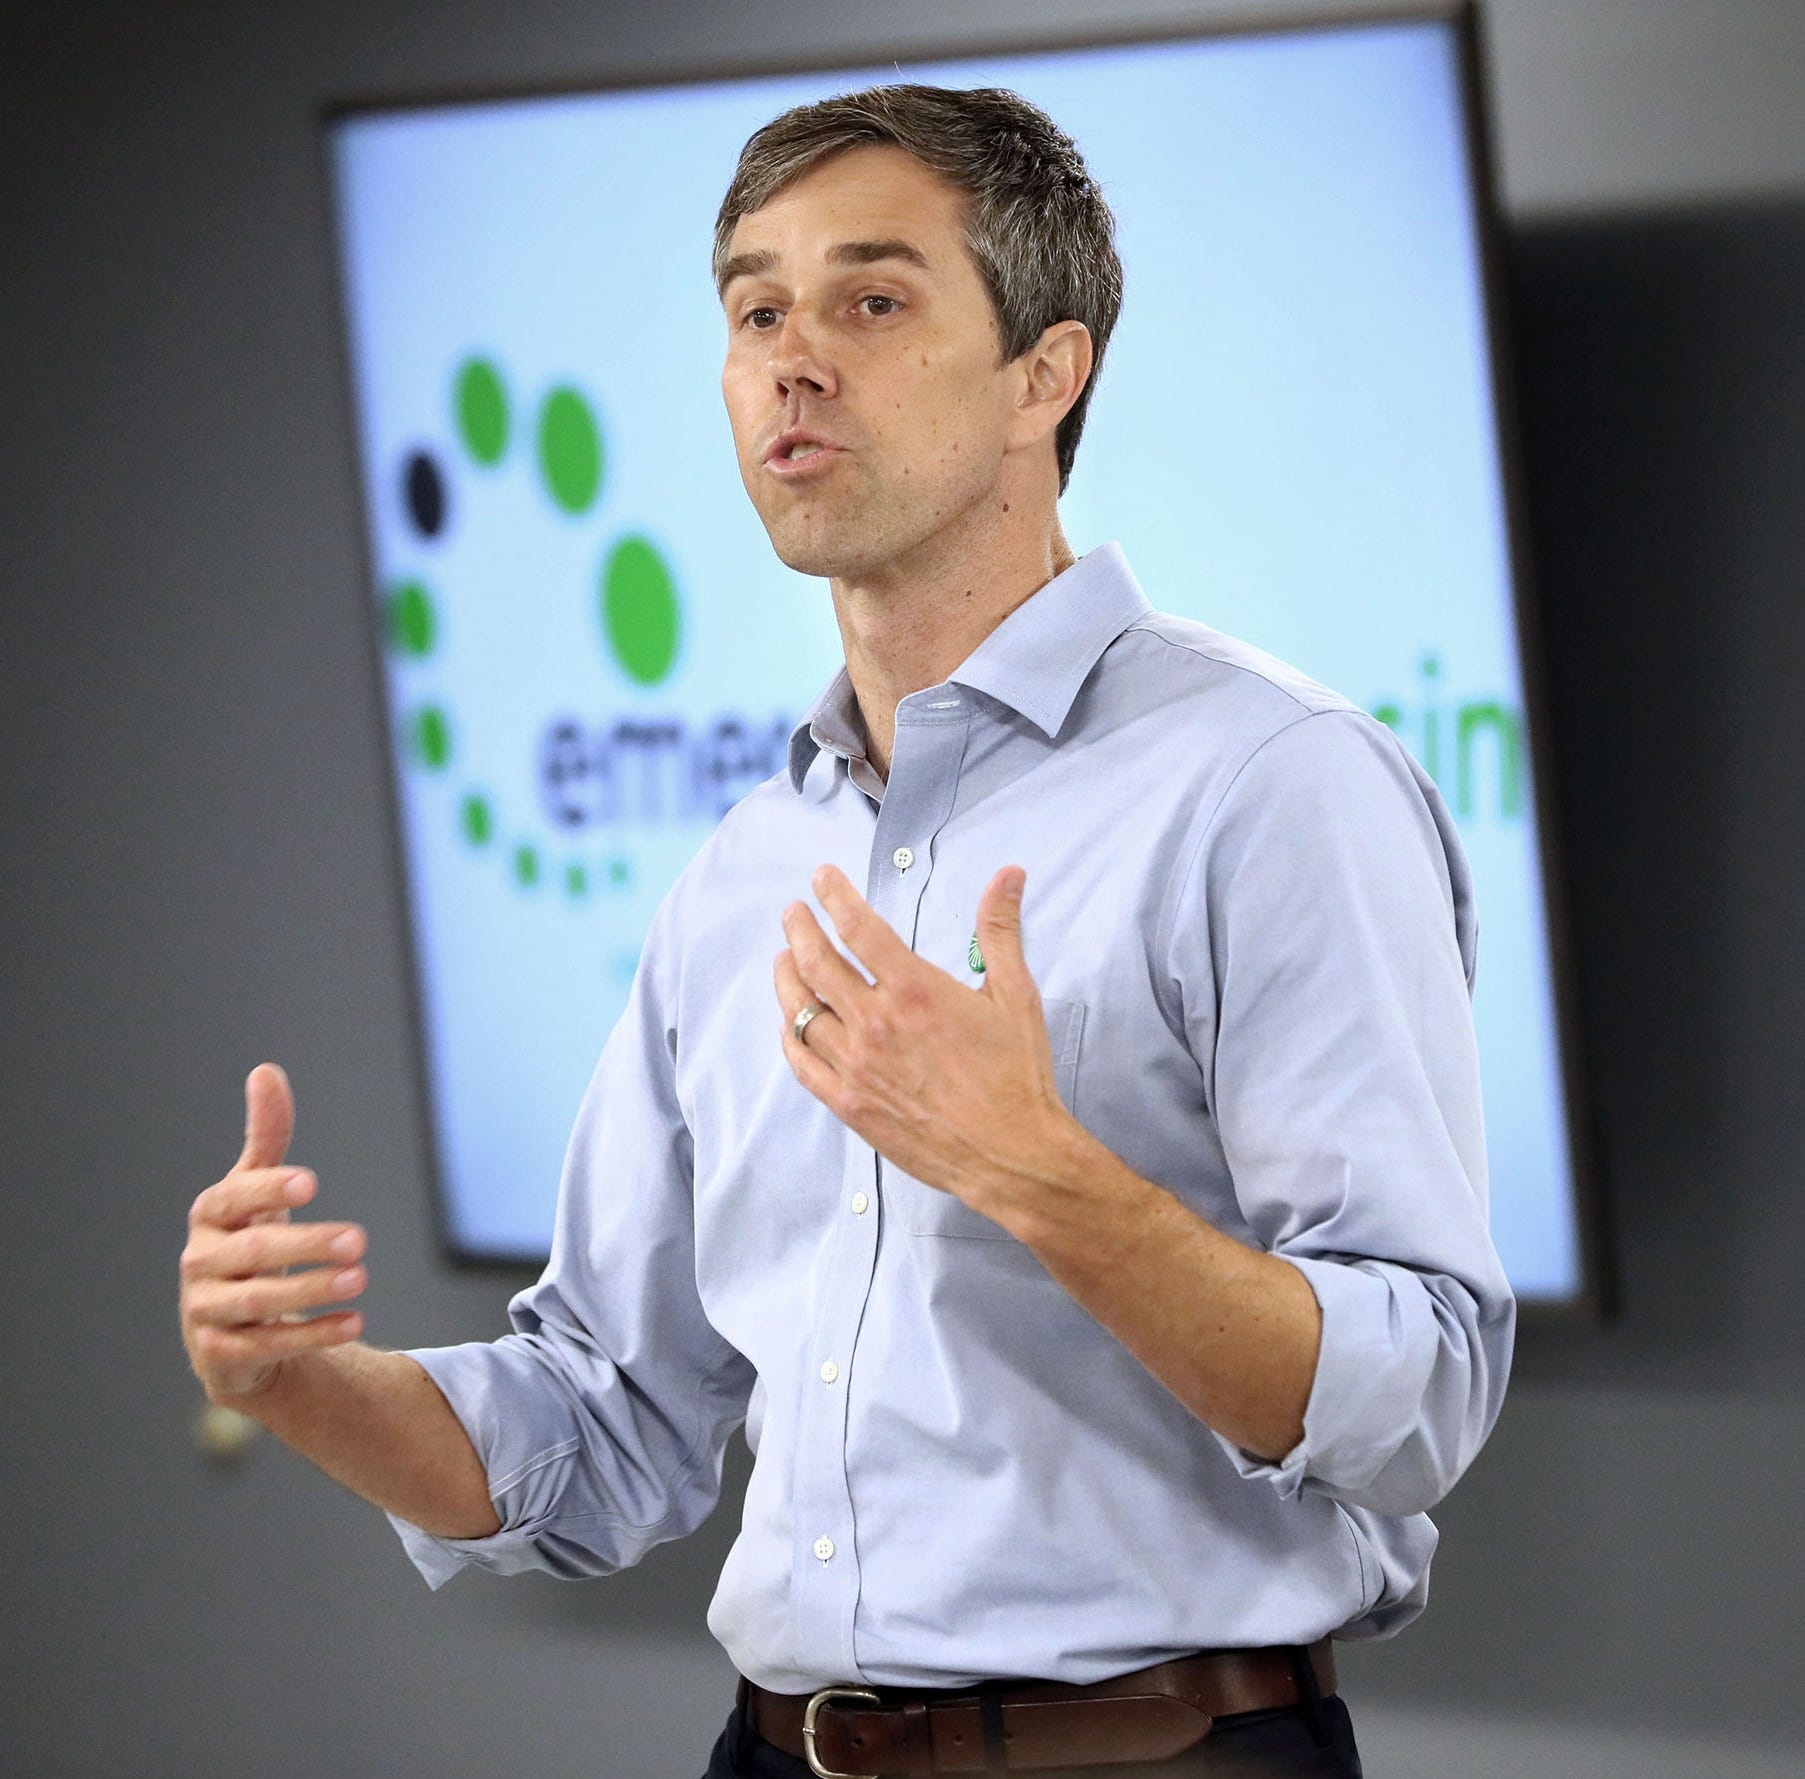 A stop at Culver's was part of Beto O'Rourke's visit to Wisconsin